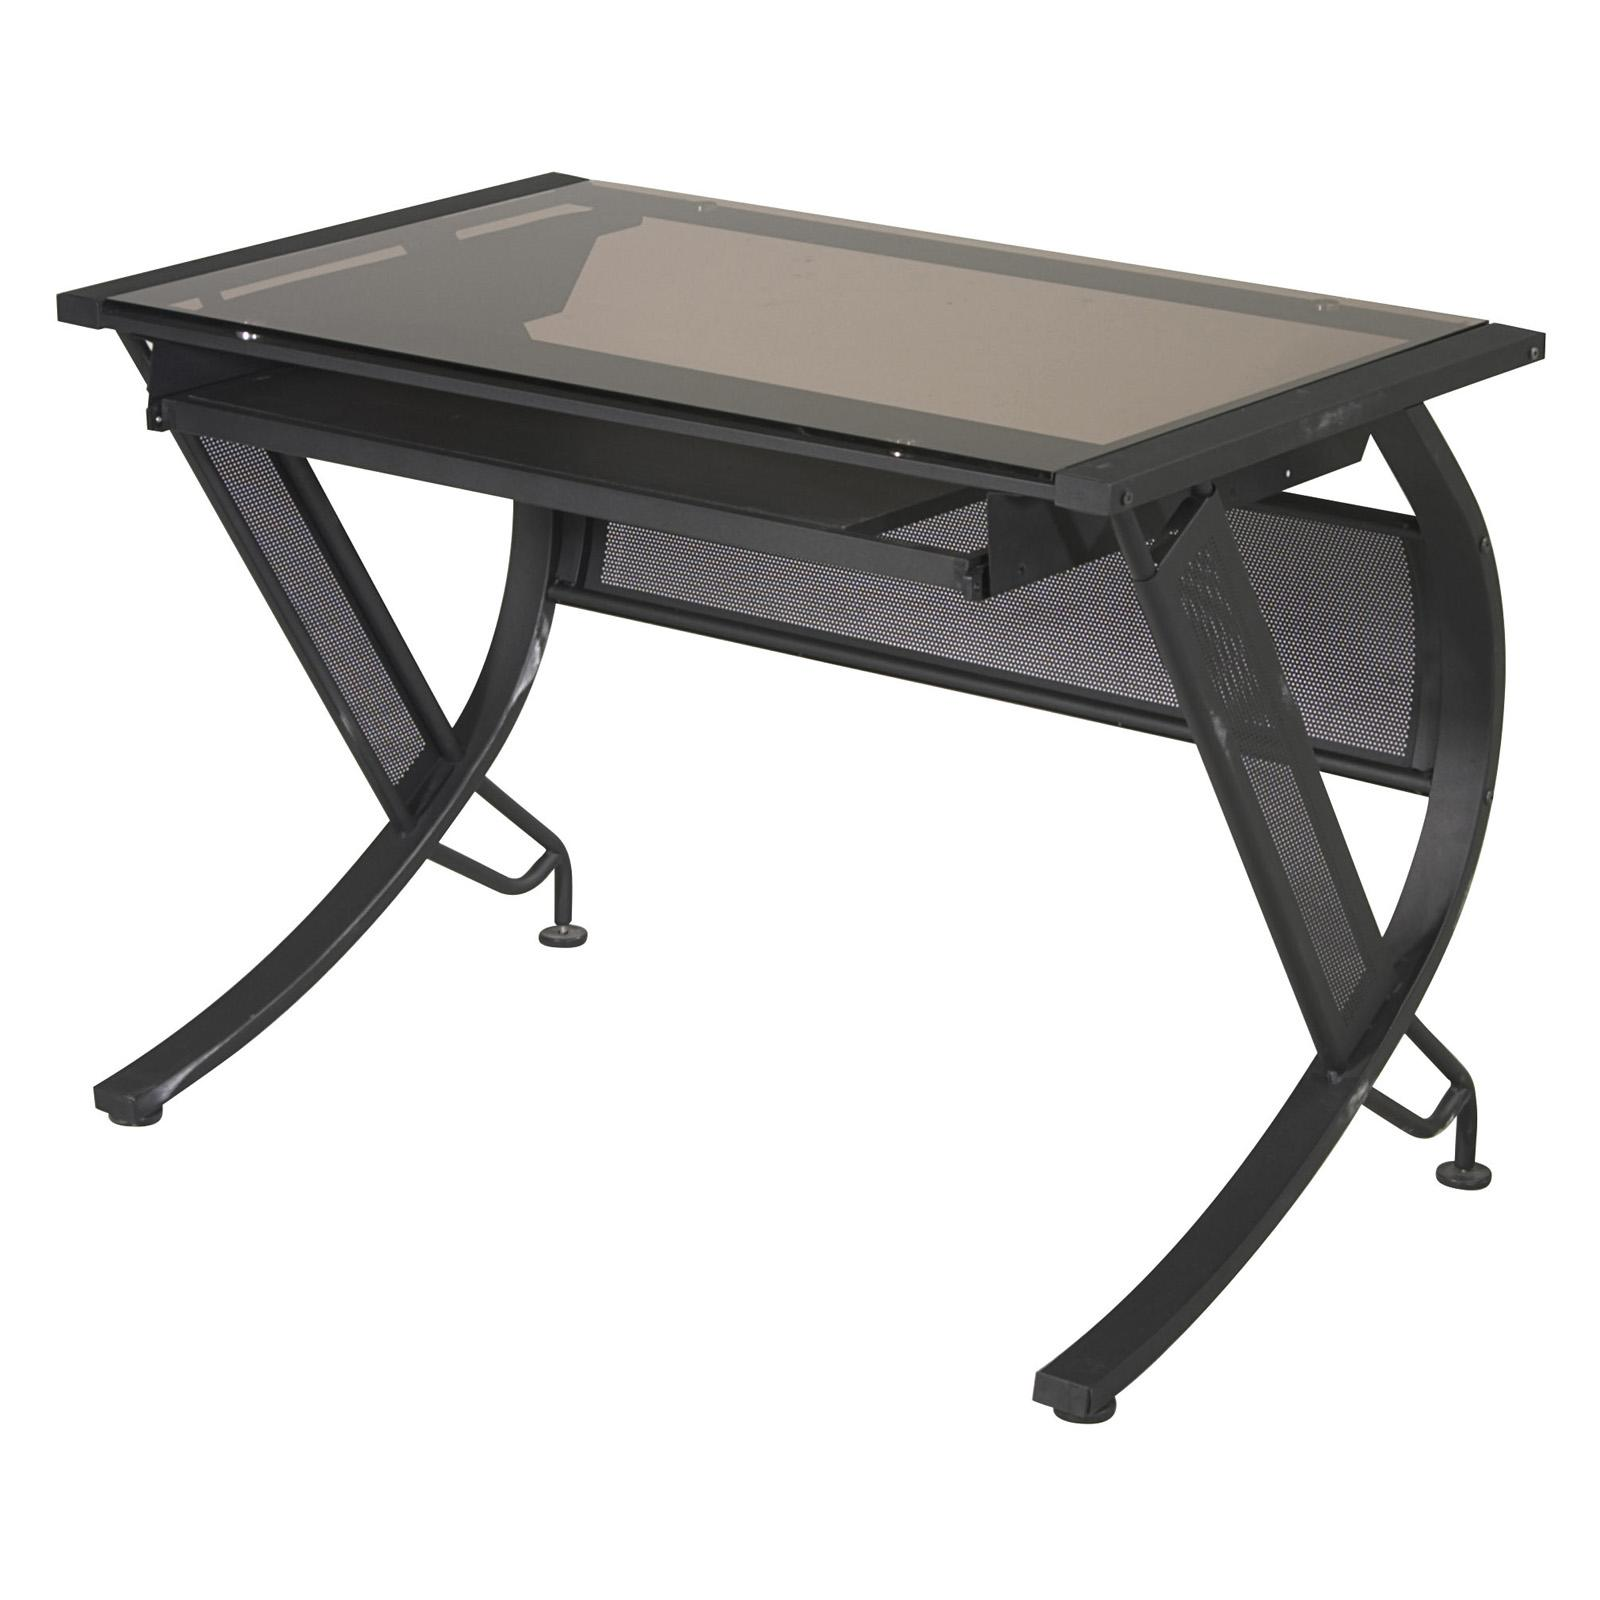 Office Star Horizon Horizon Desk with Keyboard - Black with Bronze Glass - HZN25